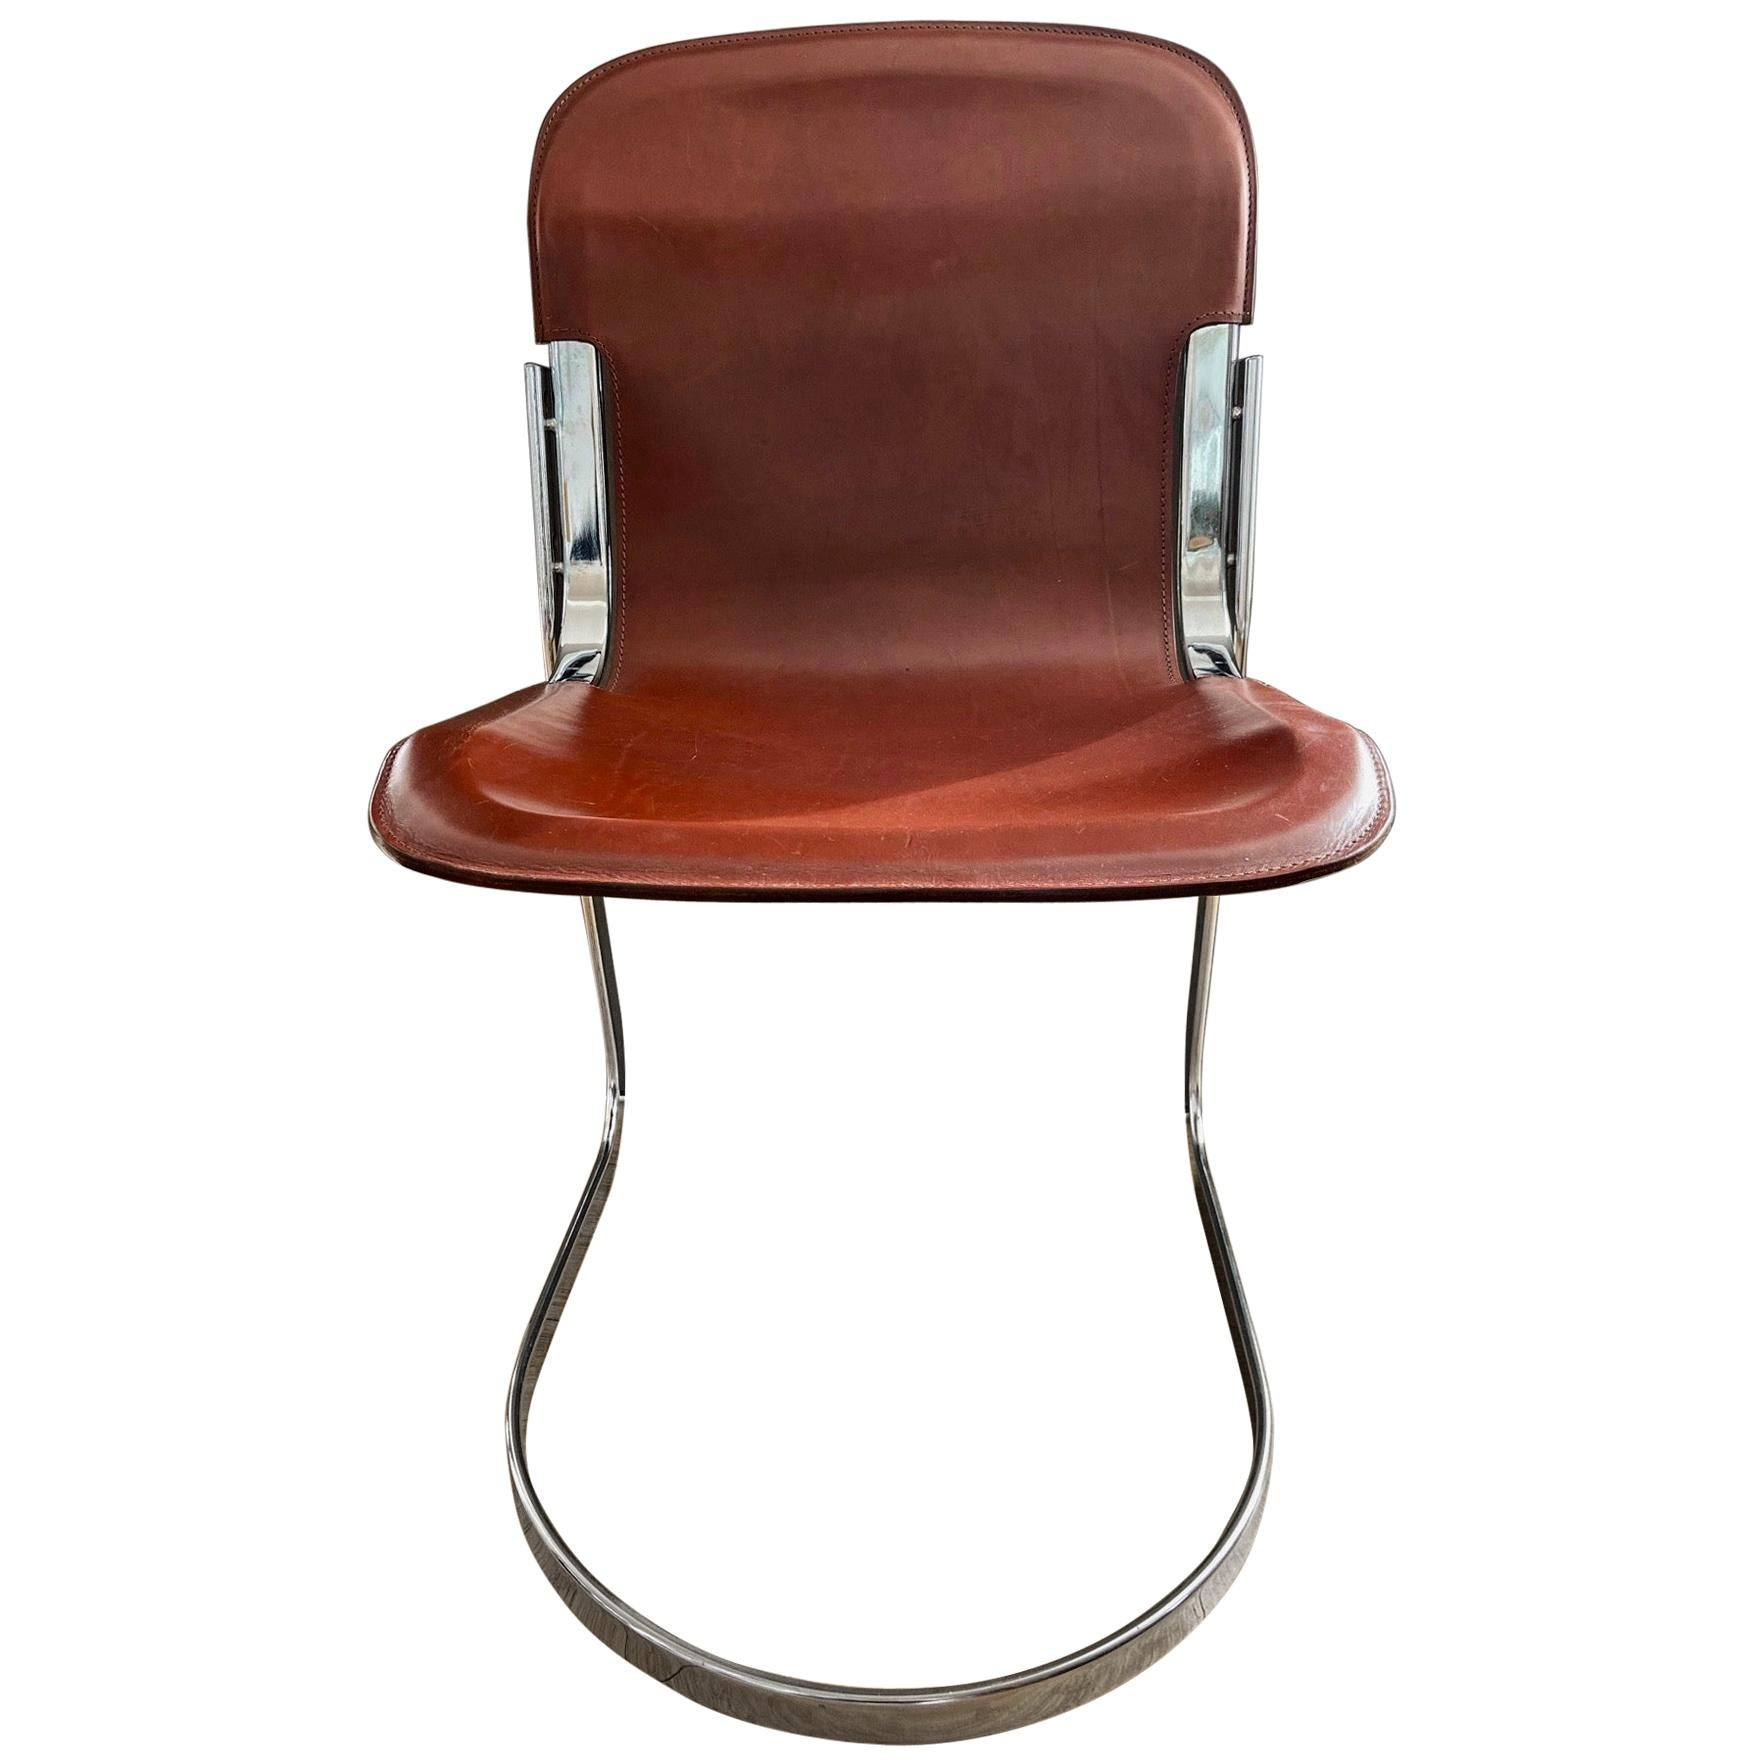 70s' Dining Chairs by Willy Rizzo for Cidue, original cognac saddle leather